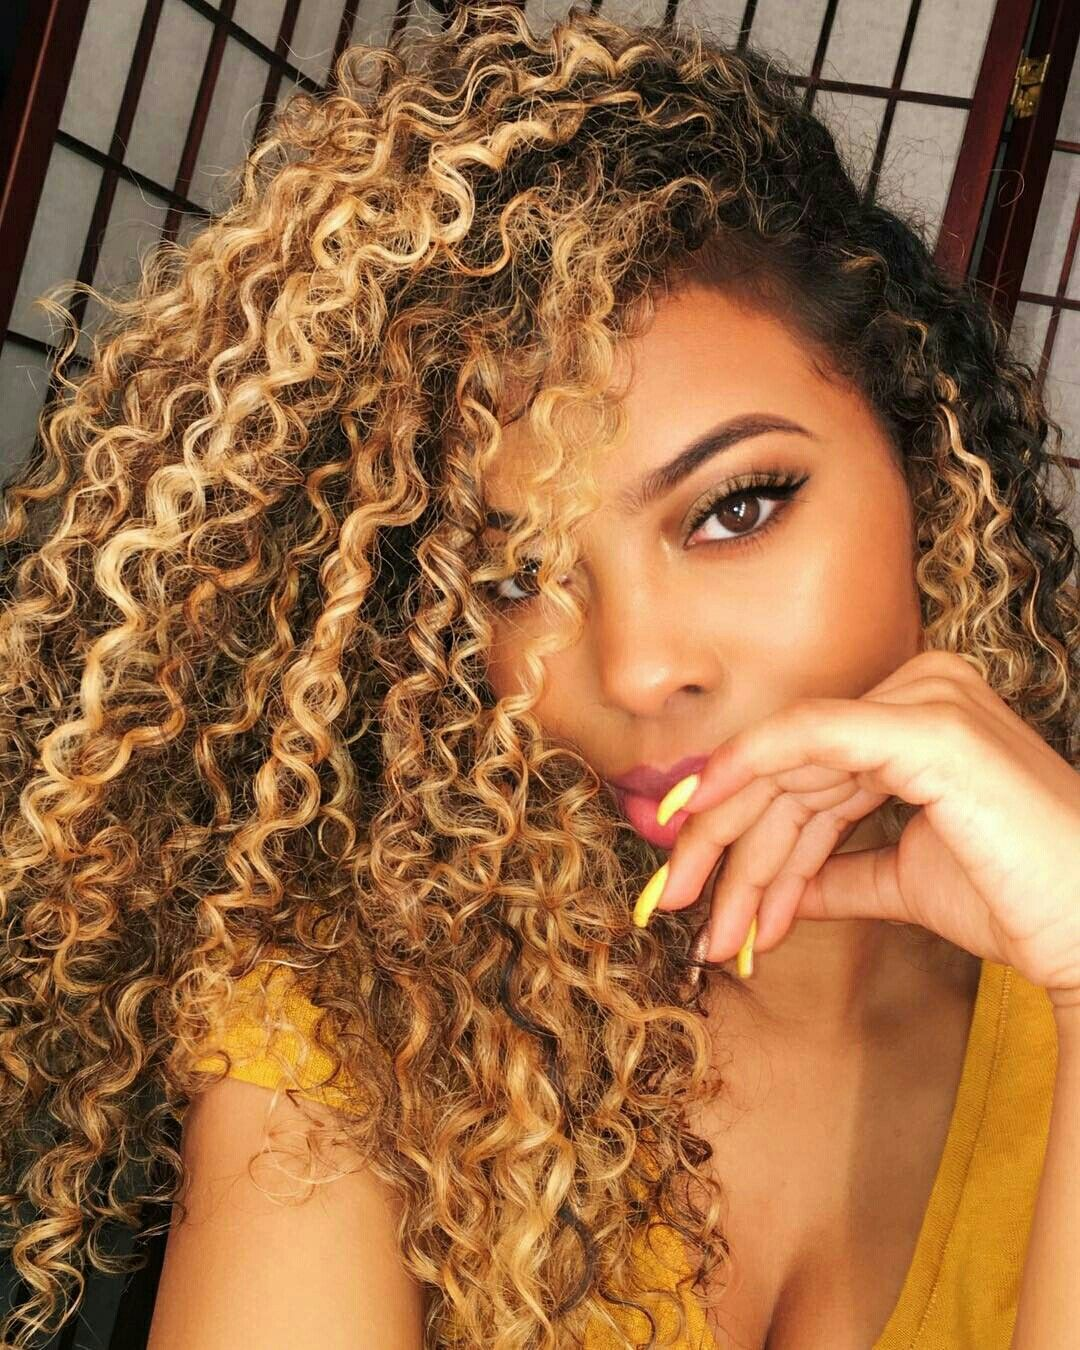 Go Follow Blackgirlsvault For More Celebration Of Black Beauty Excellence And Culture Colored Curly Hair Blonde Highlights Curly Hair Highlights Curly Hair